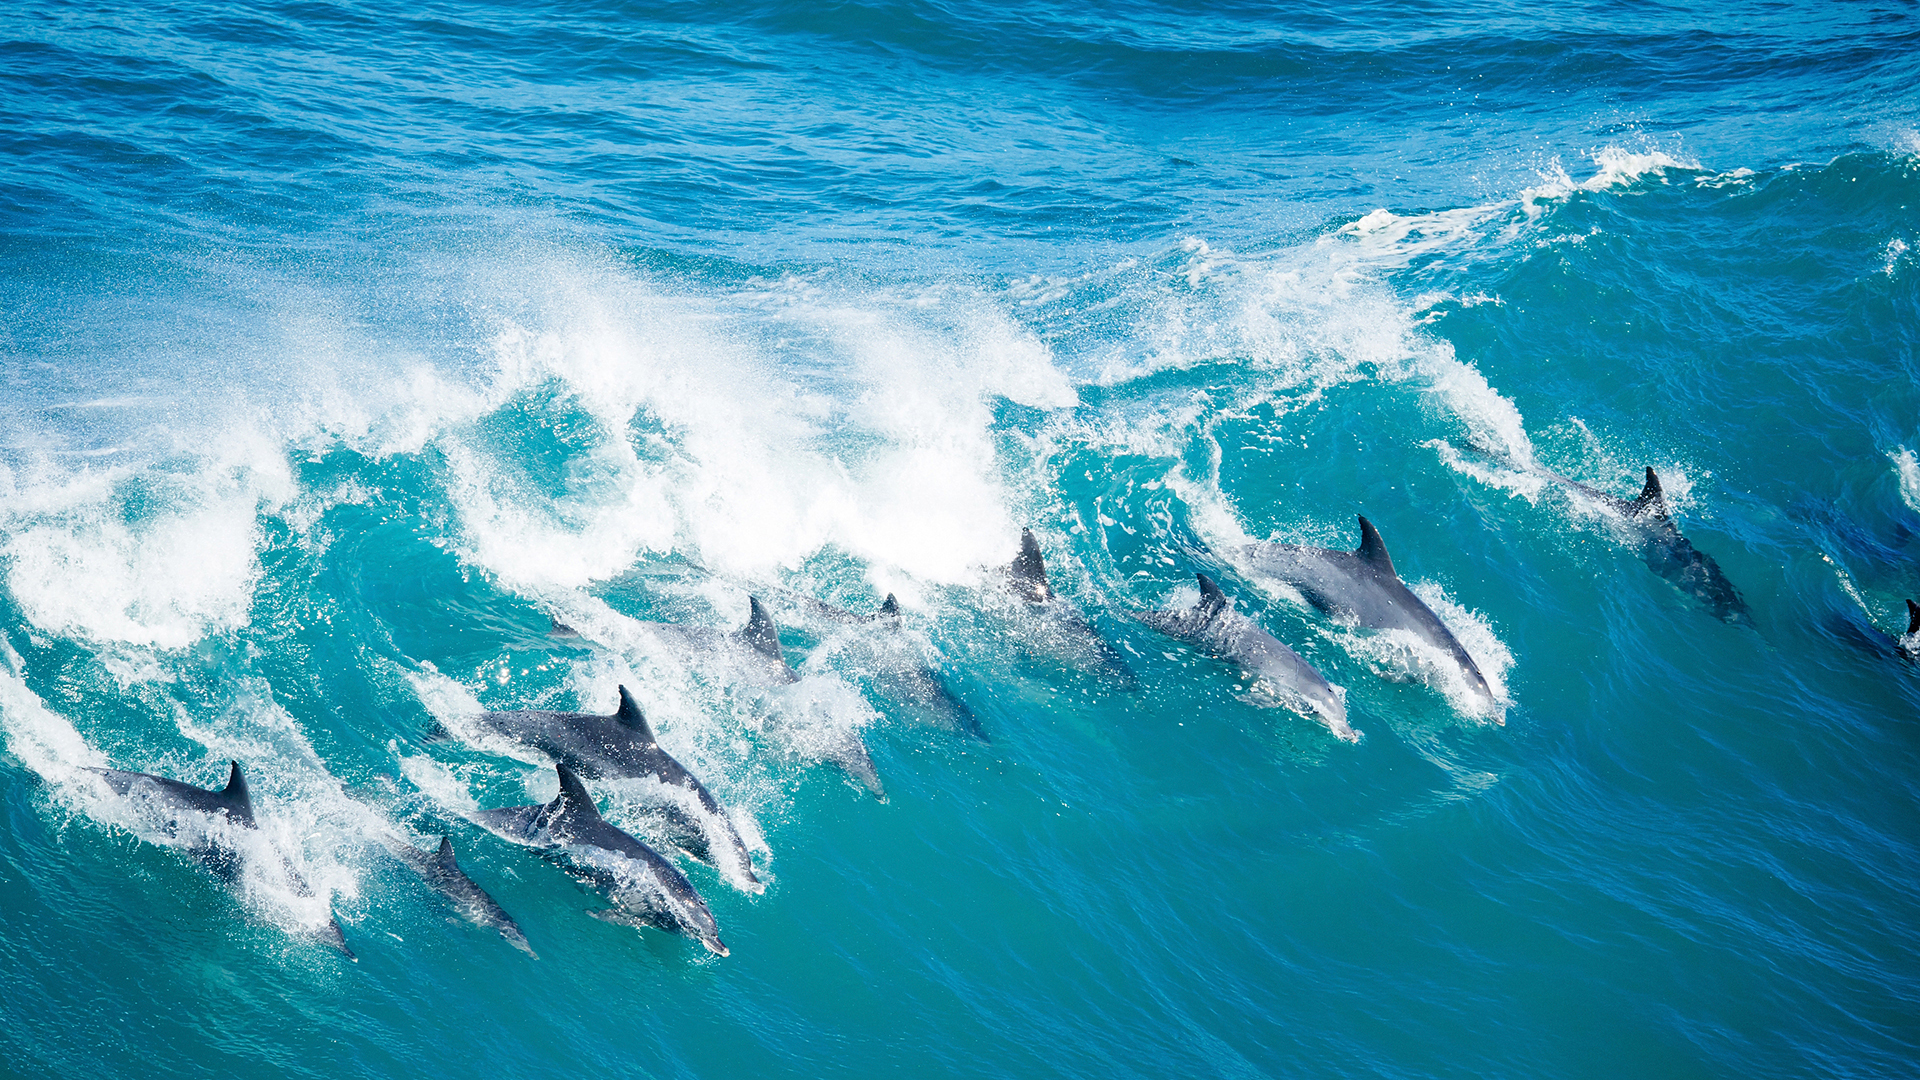 More Specialist Topics dolphins in wave